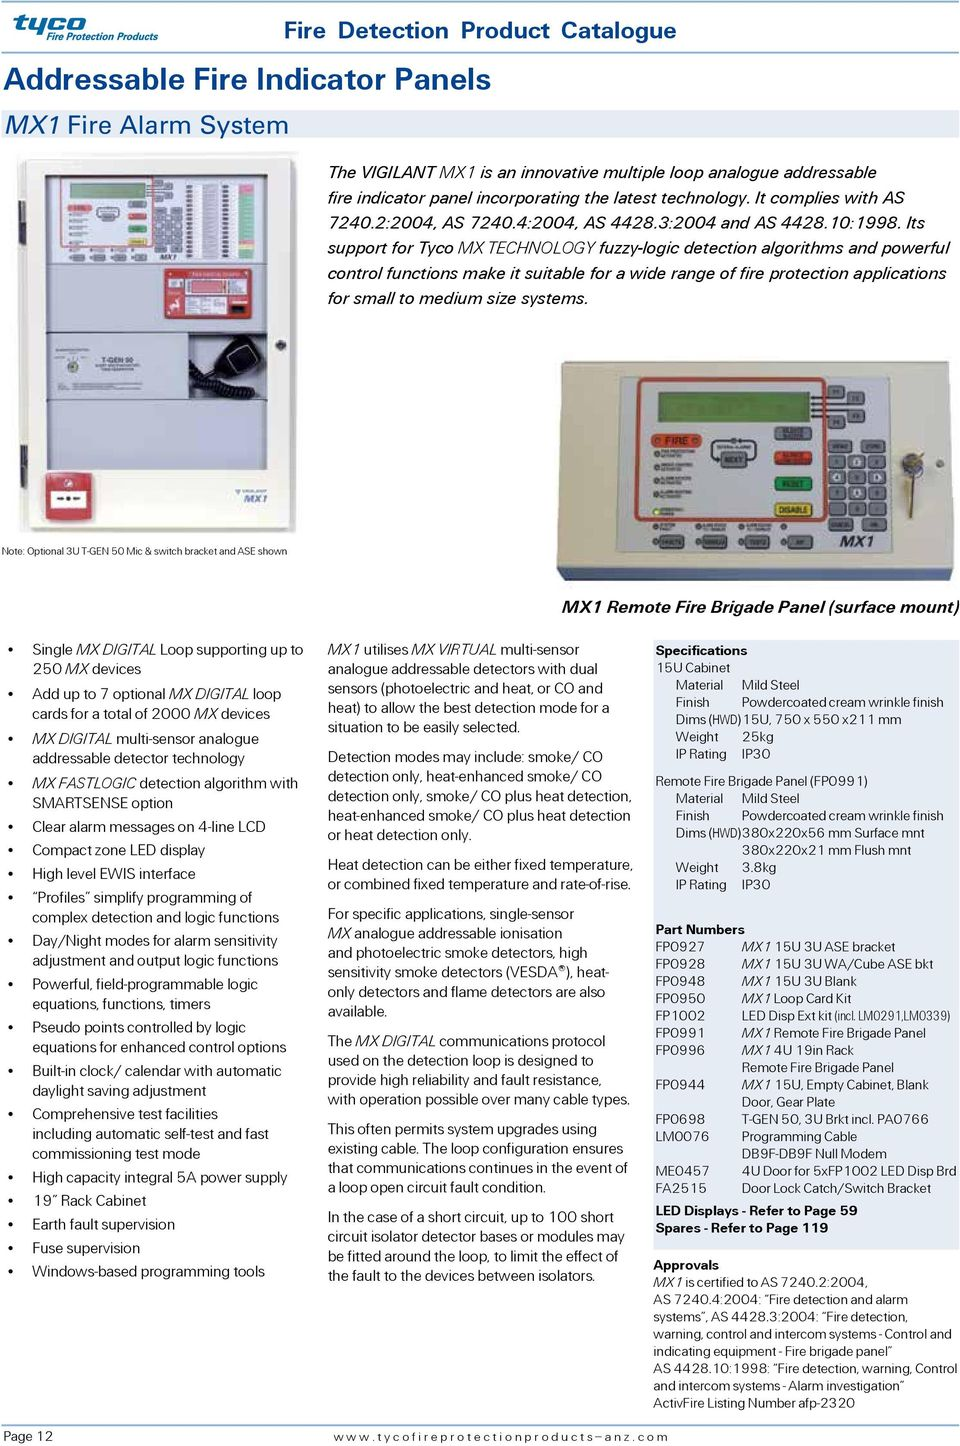 Fire Detection Product Catalogue Australia Issue 4 Pdf System Ebl128 Panasonic Electric Works Europe Ag Its Support For Tyco Mx Technology Fuzzy Logic Algorithms And Powerful Control Functions Make